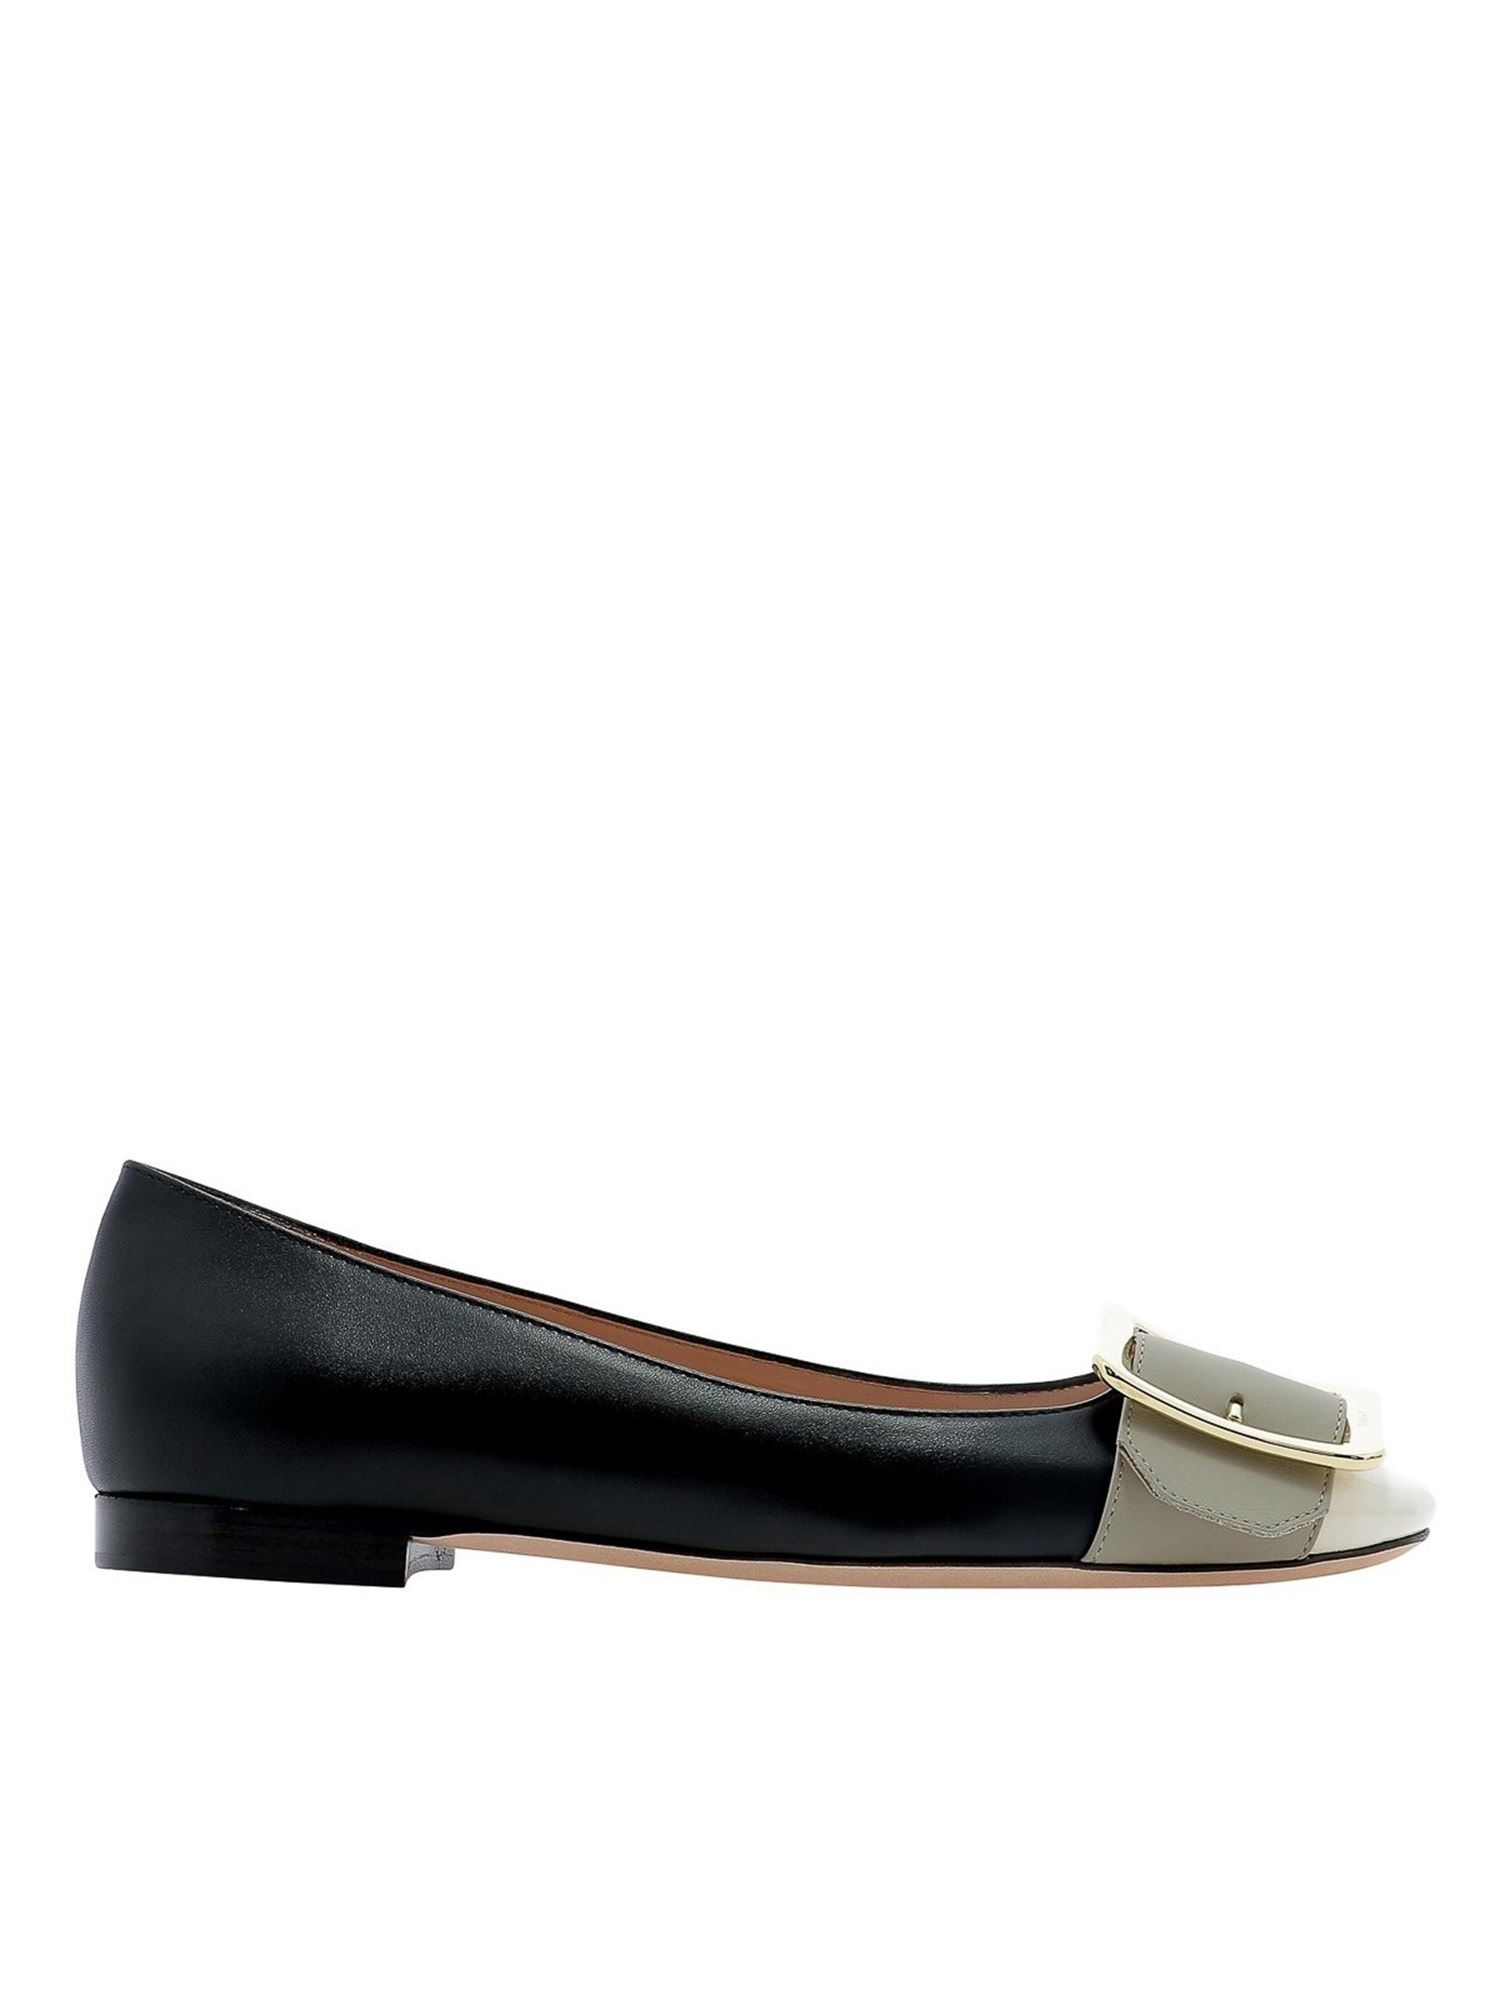 Bally JACKIE BALLERINAS IN BLACK